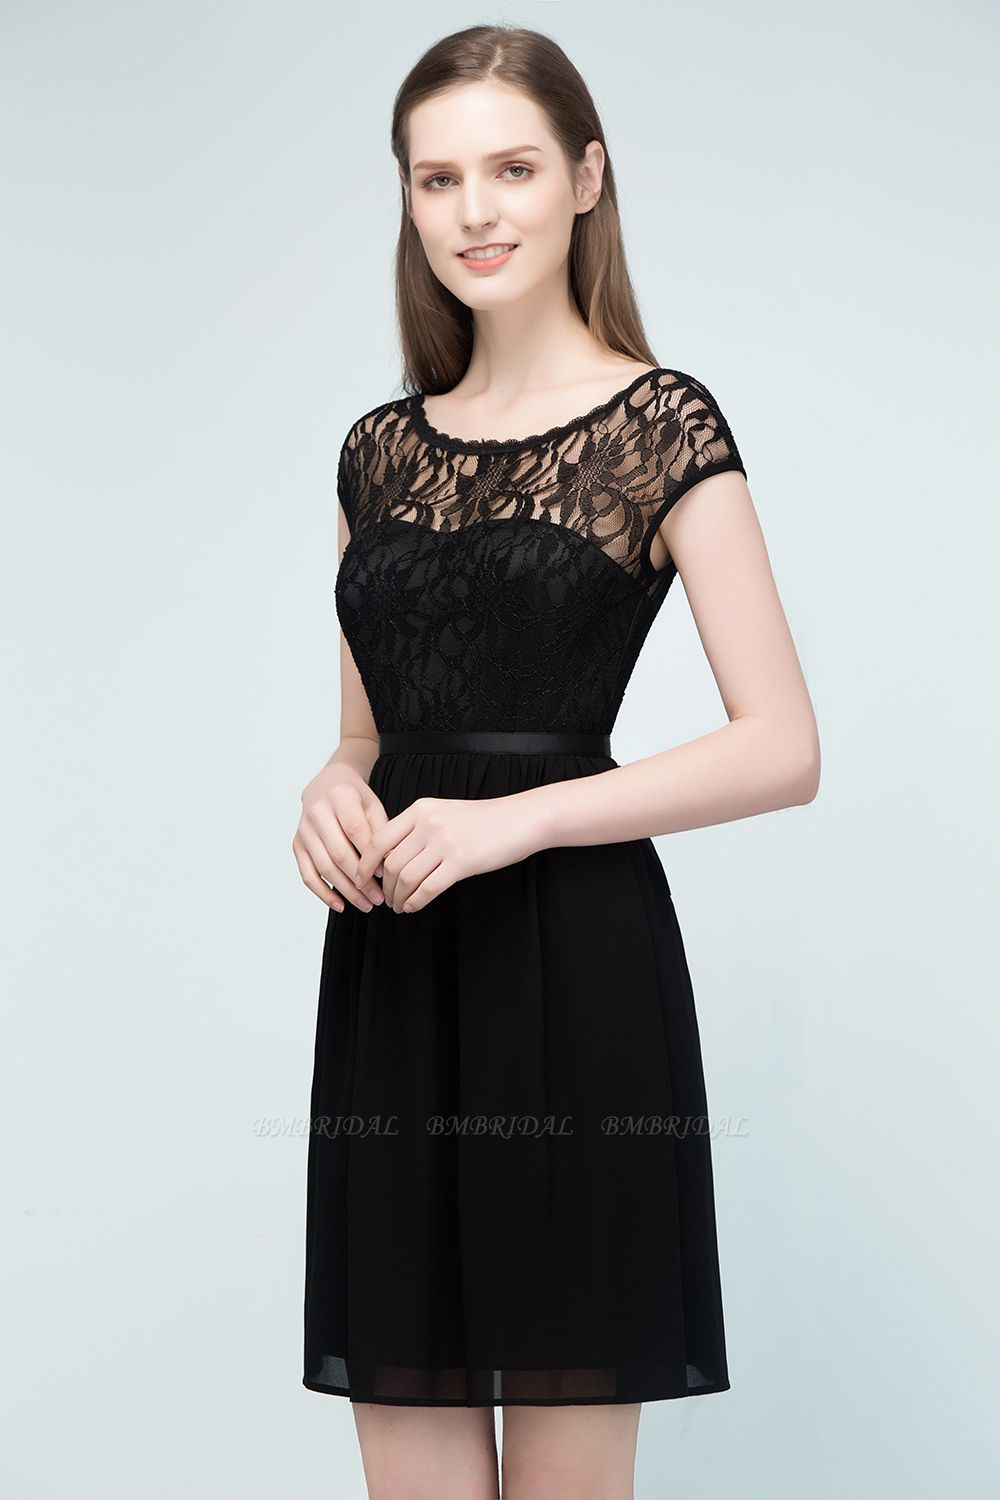 BMbridal A-line Short Scoop Lace Top Chiffon Bridesmaid Dress